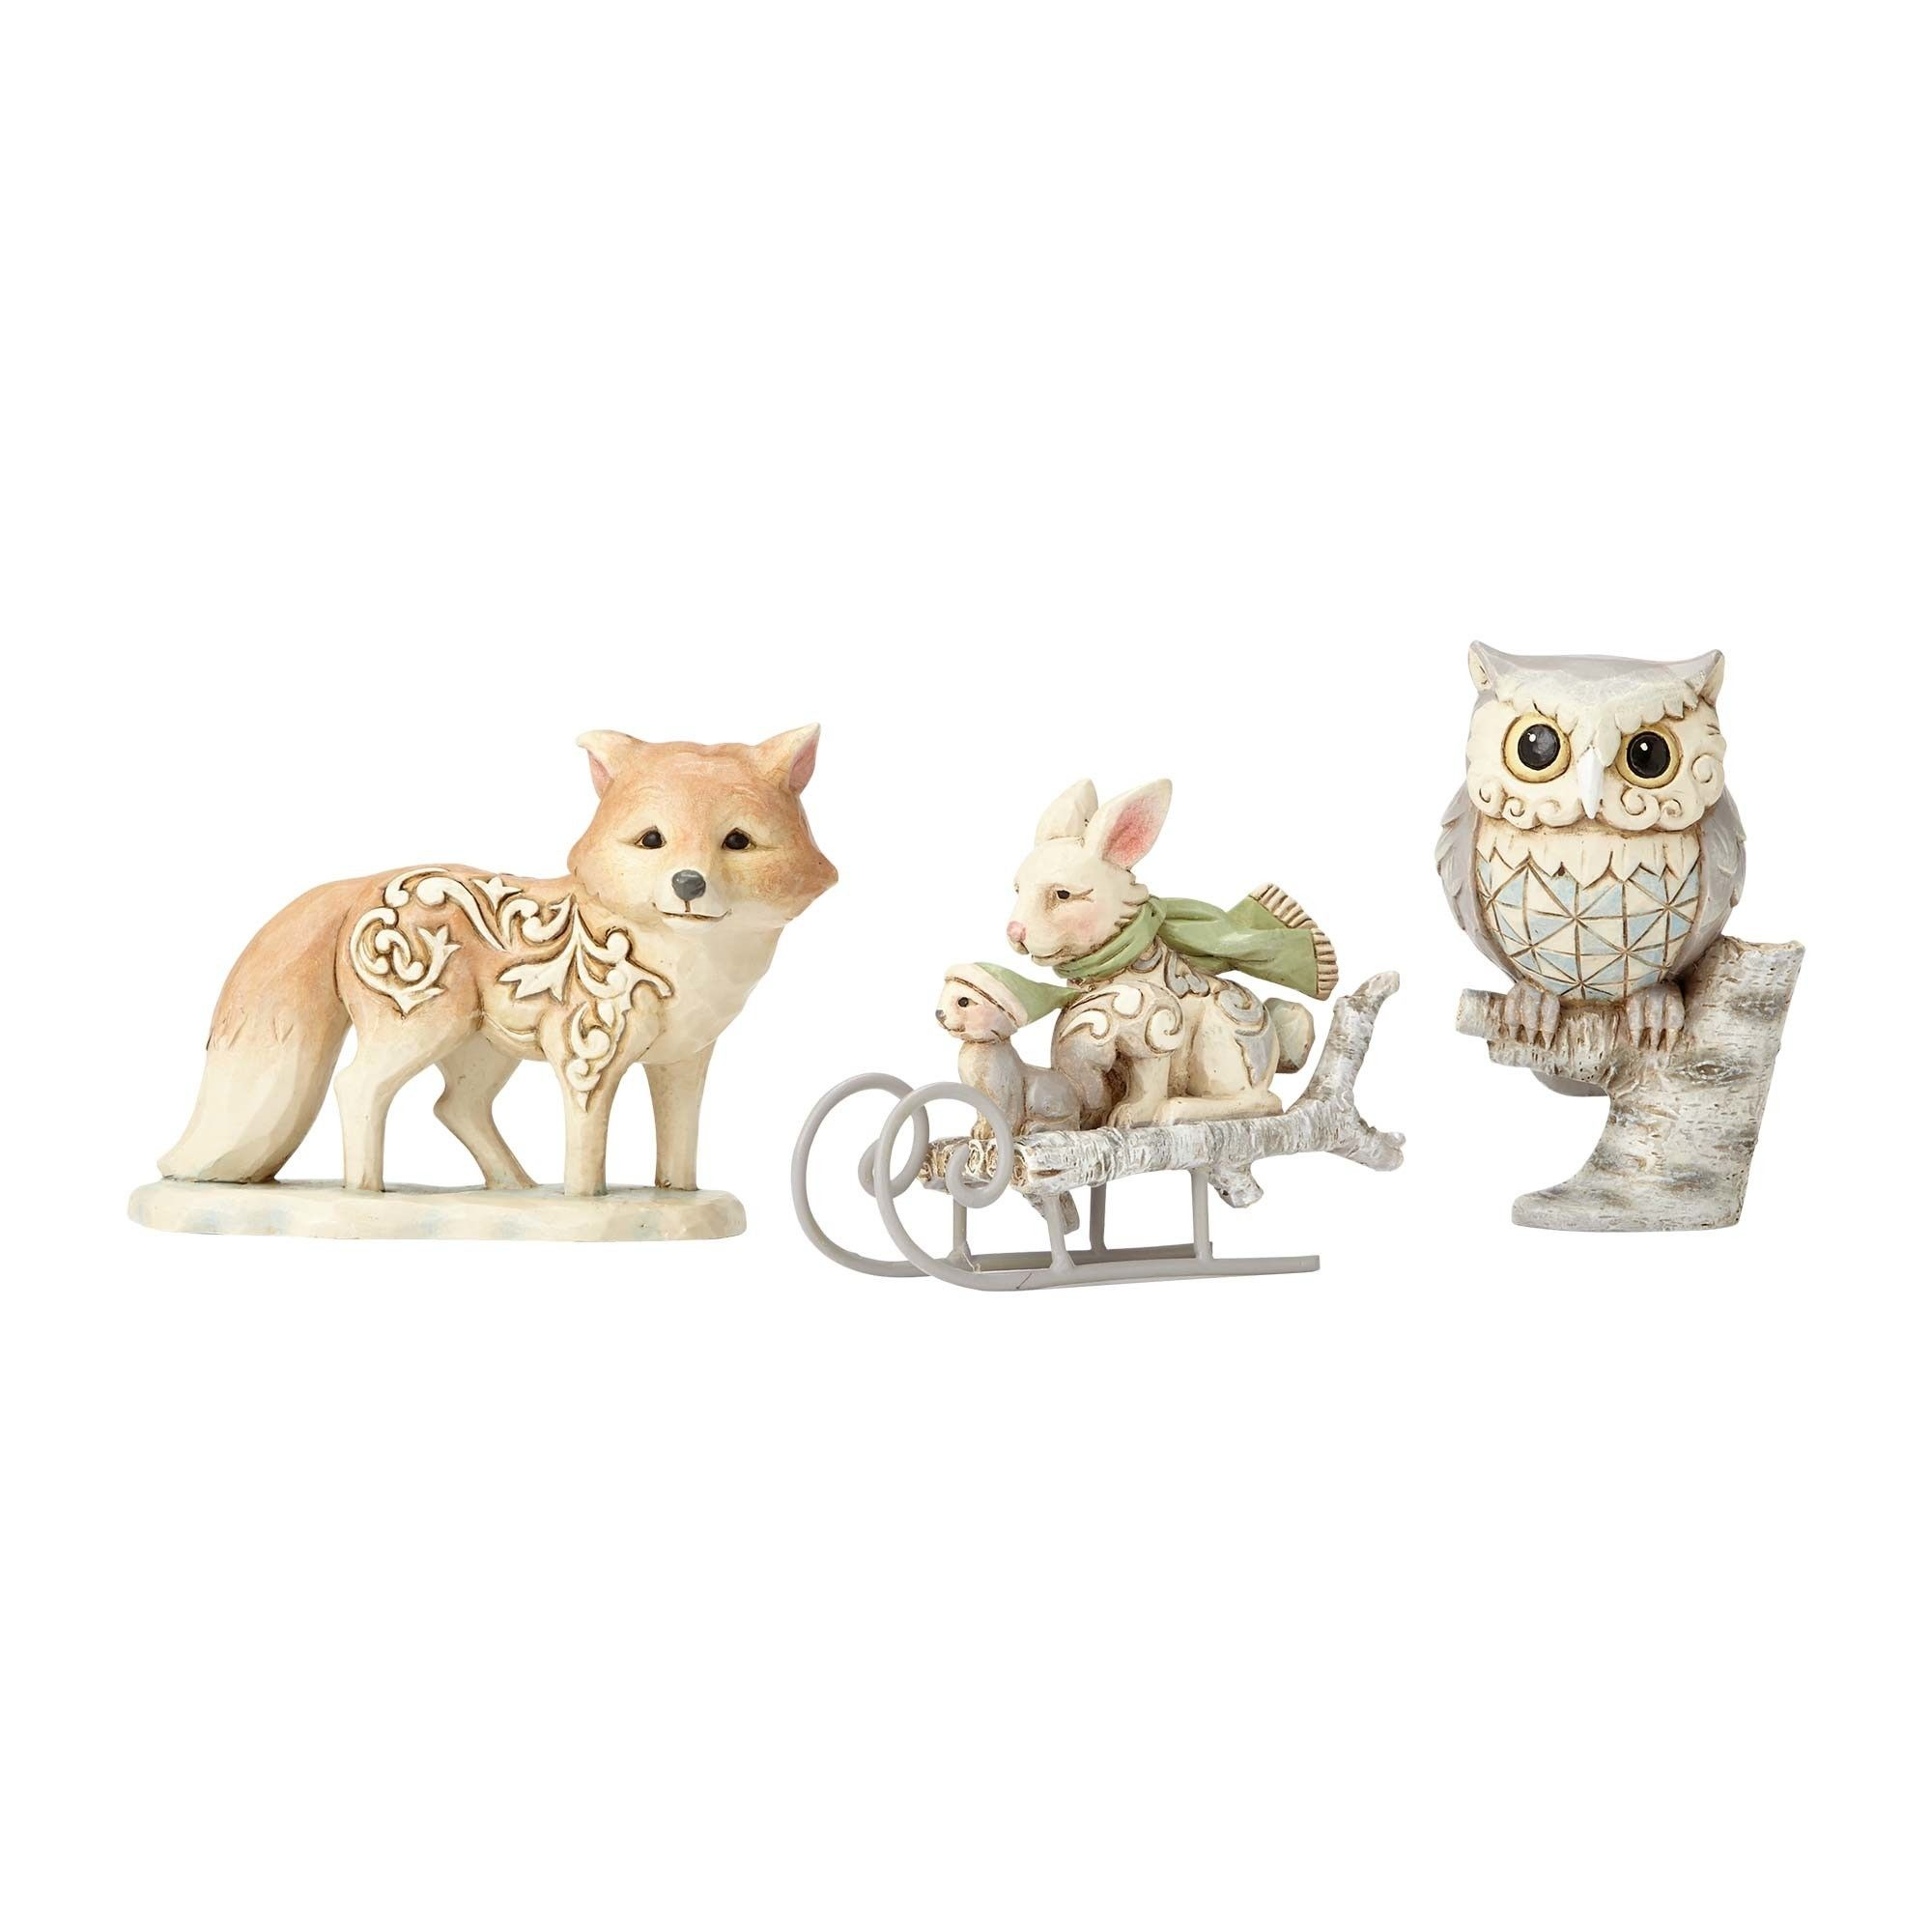 White Woodland Owl, Squirrel, and BunnySet of 3 Figurines